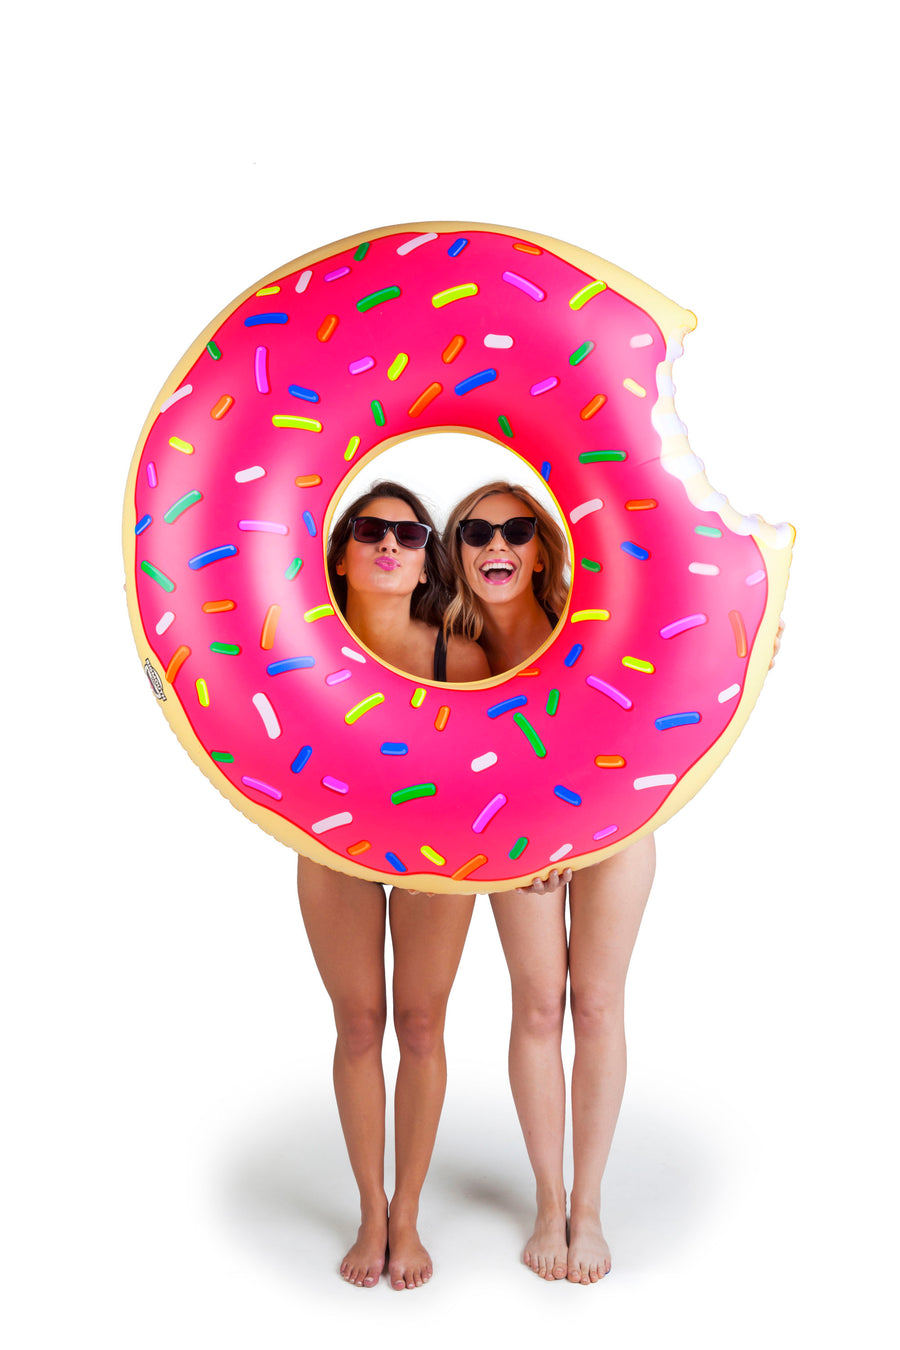 4 feet NEW BigMouth Inc Giant Strawberry Frosted Donut Pool Float